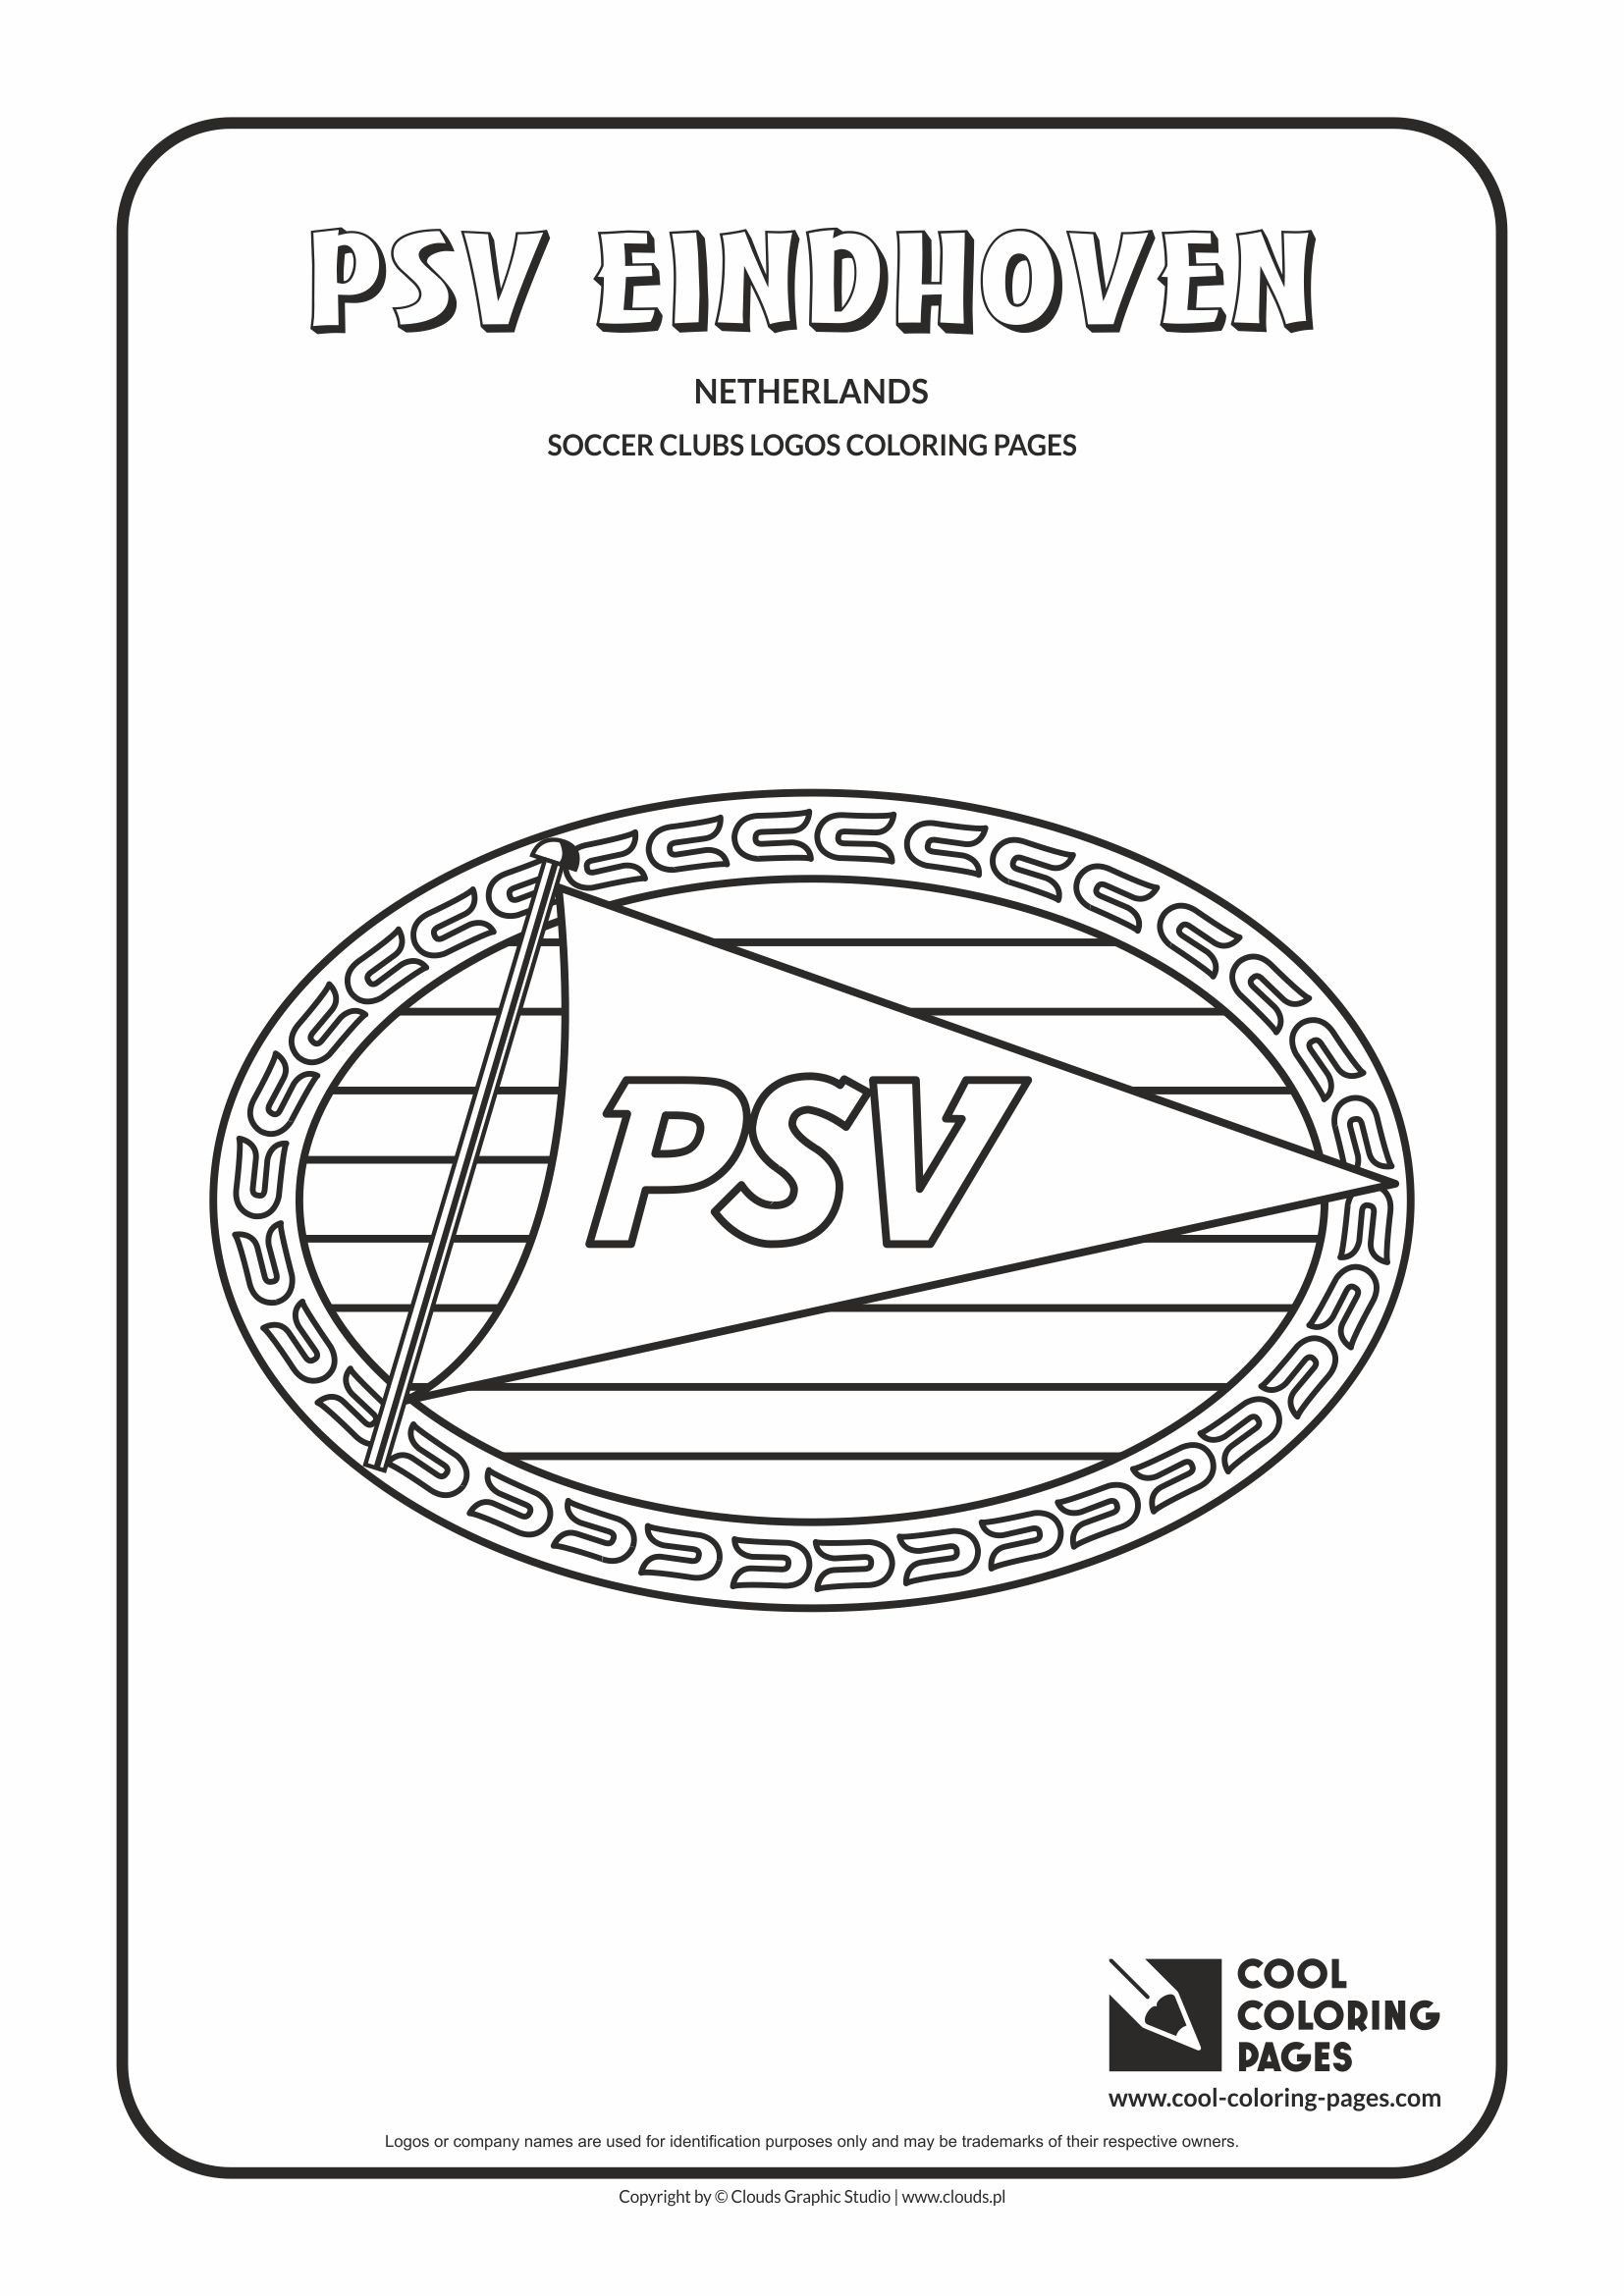 Cool Coloring Pages - Soccer Clubs Logos / PSV Einghoven logo / Coloring page with PSV Einghoven logo